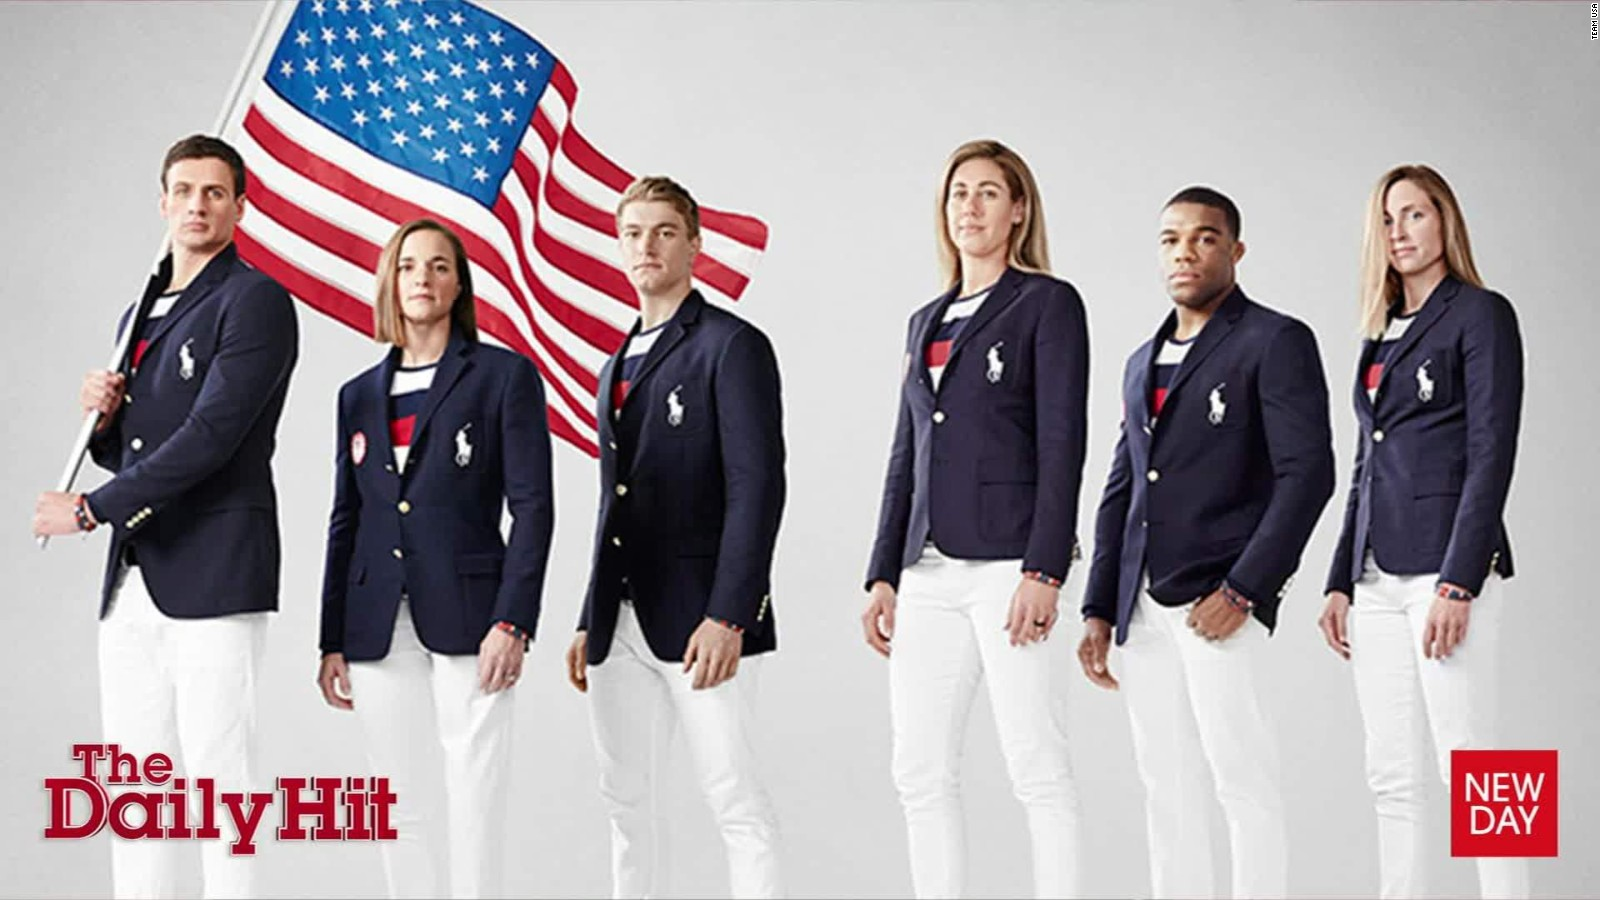 Team Usas Olympic Uniform Mocked On Social Media Cnn